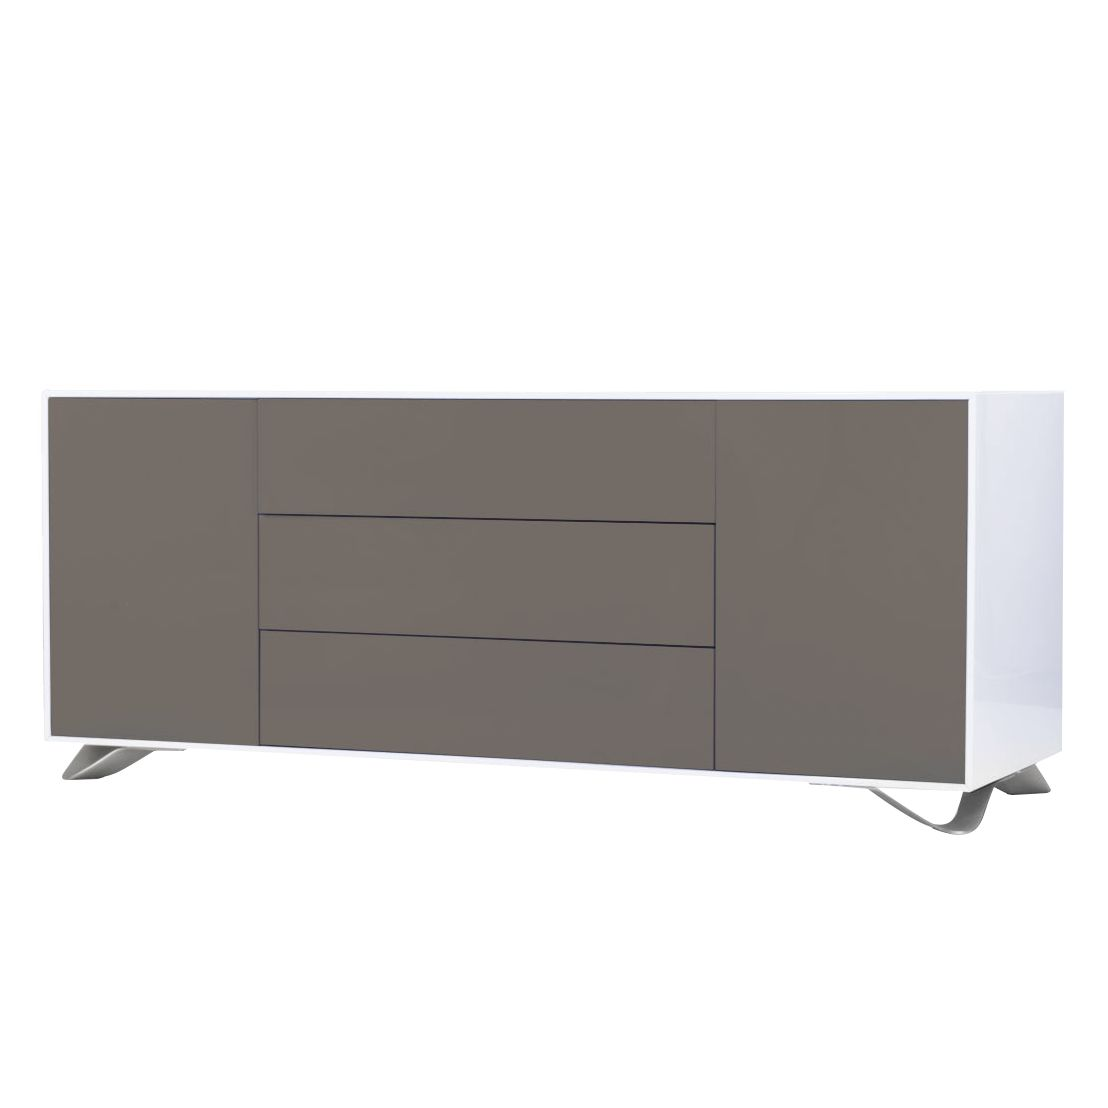 hochglanz sideboard grau preisvergleiche erfahrungsberichte und kauf bei nextag. Black Bedroom Furniture Sets. Home Design Ideas